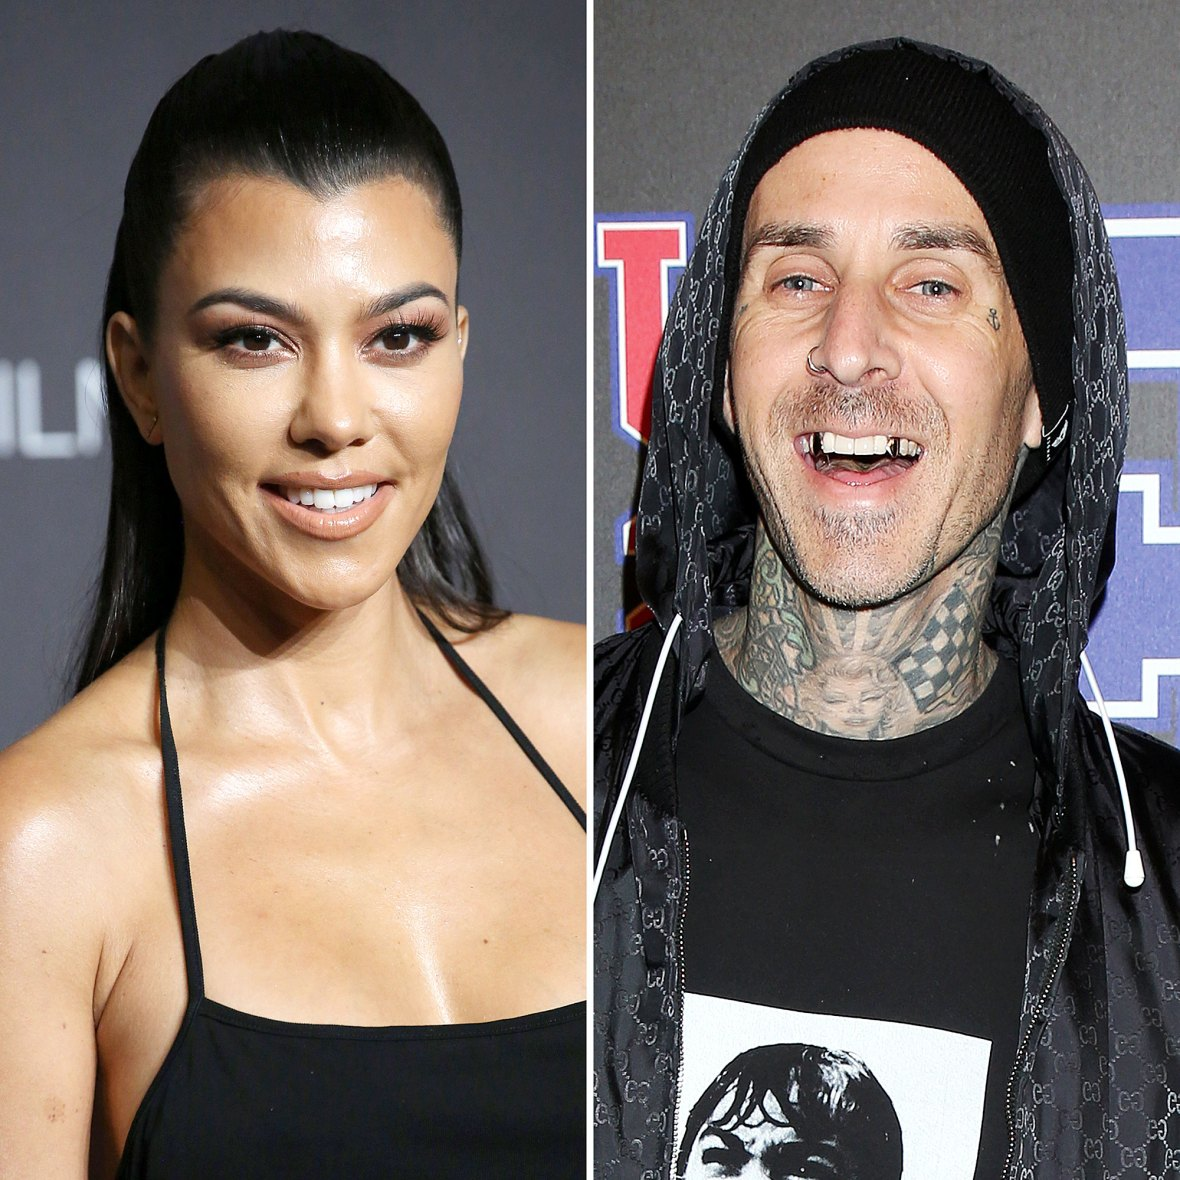 kuwtk-kourtney-kardashian-and-travis-barker-heres-how-they-went-from-friends-to-lovers